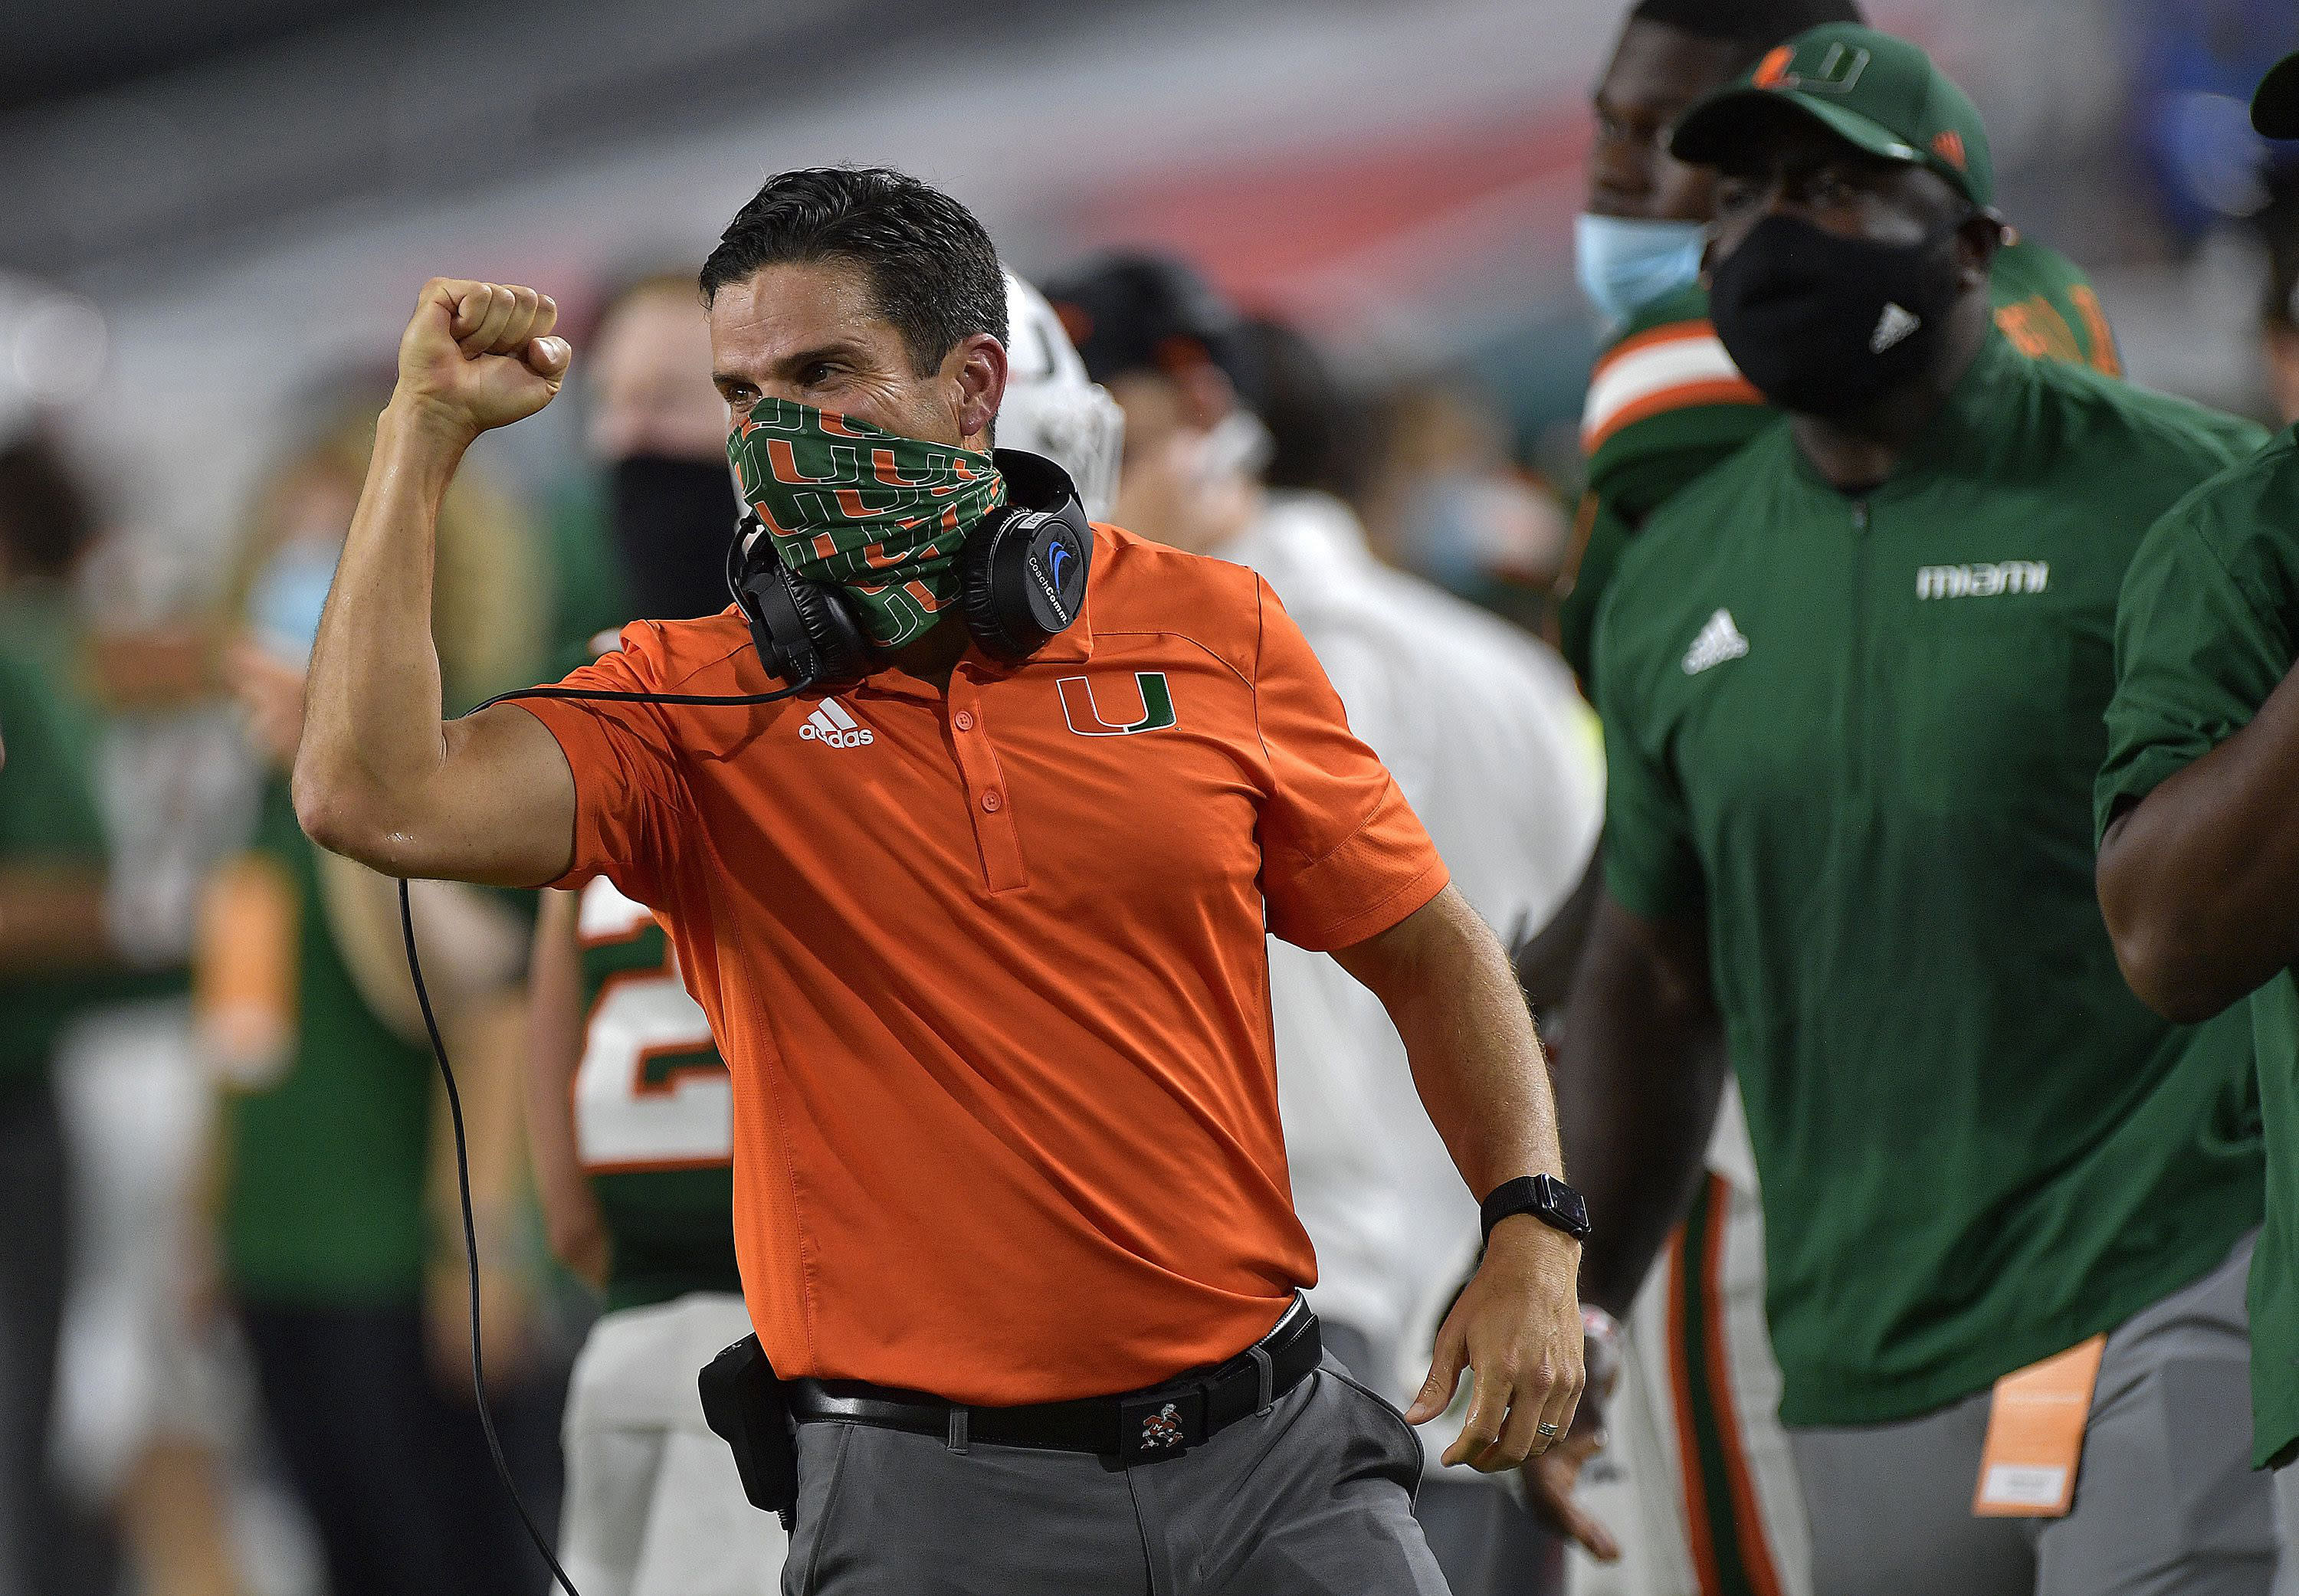 Dave Hyde: Miami beats up on Pitt — now what does it mean?